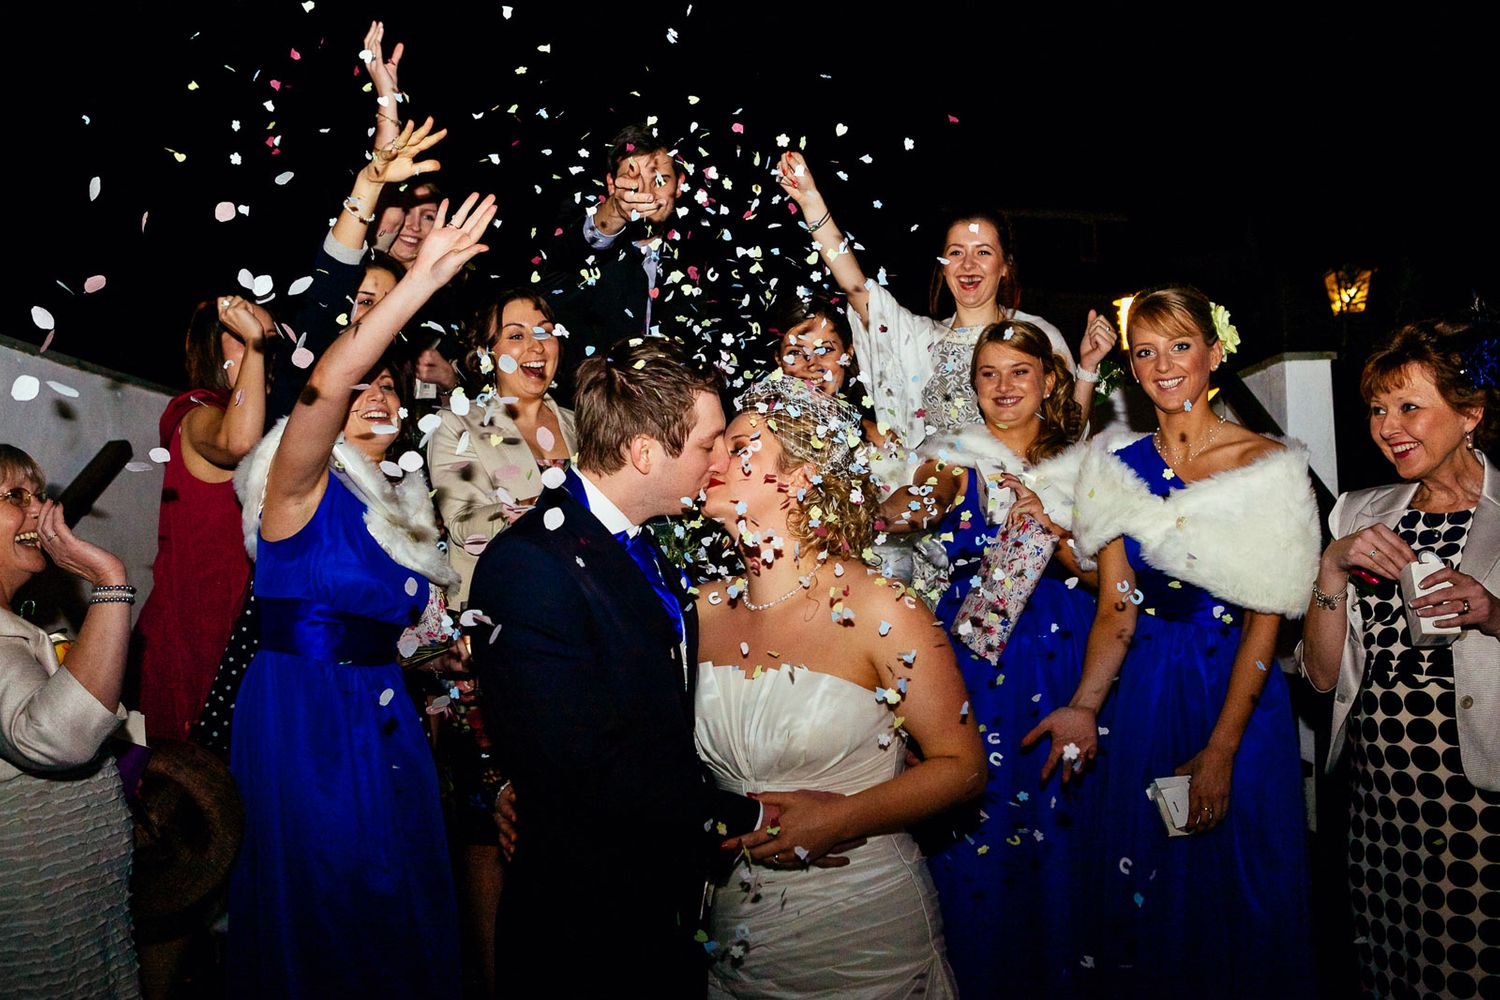 reportage wedding photography in Devon and Cornwall. confetti at night